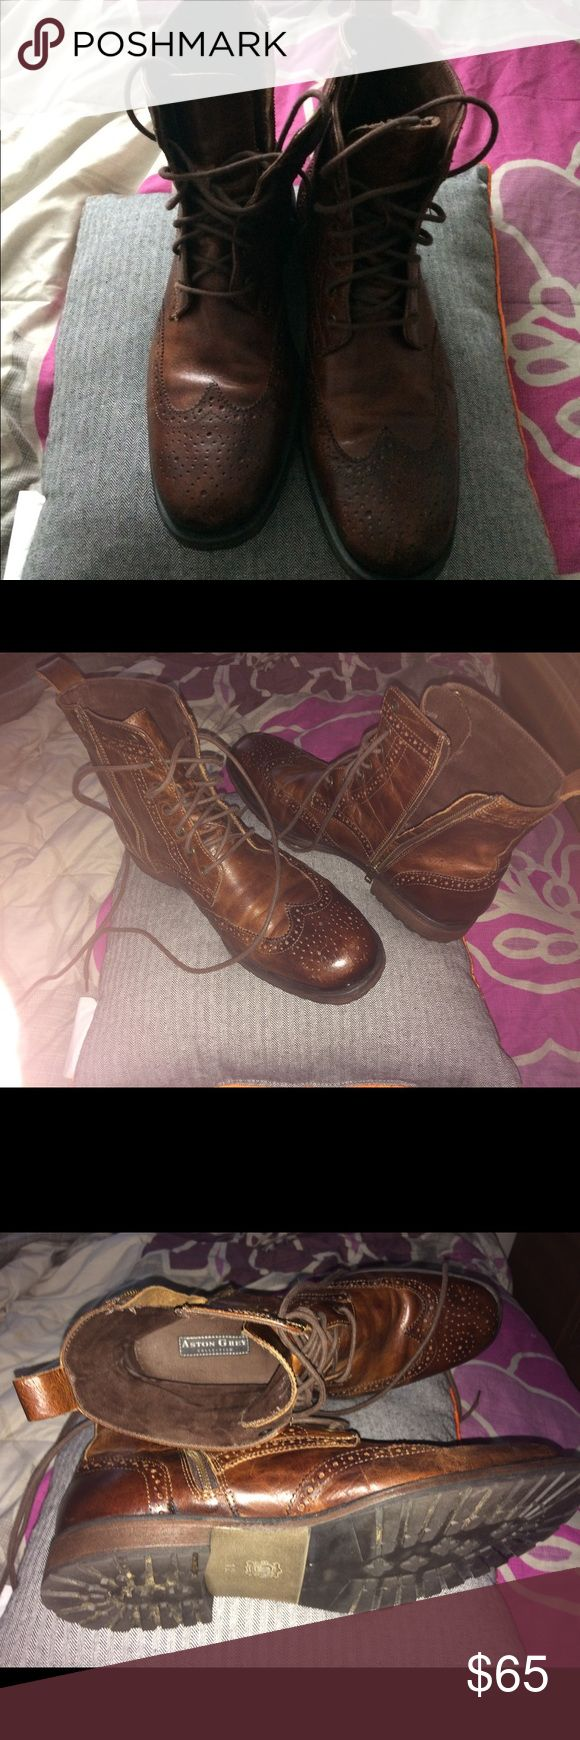 Aston grey collection boots Aston grey used great condition. Offers accepted aston grey Shoes Boots